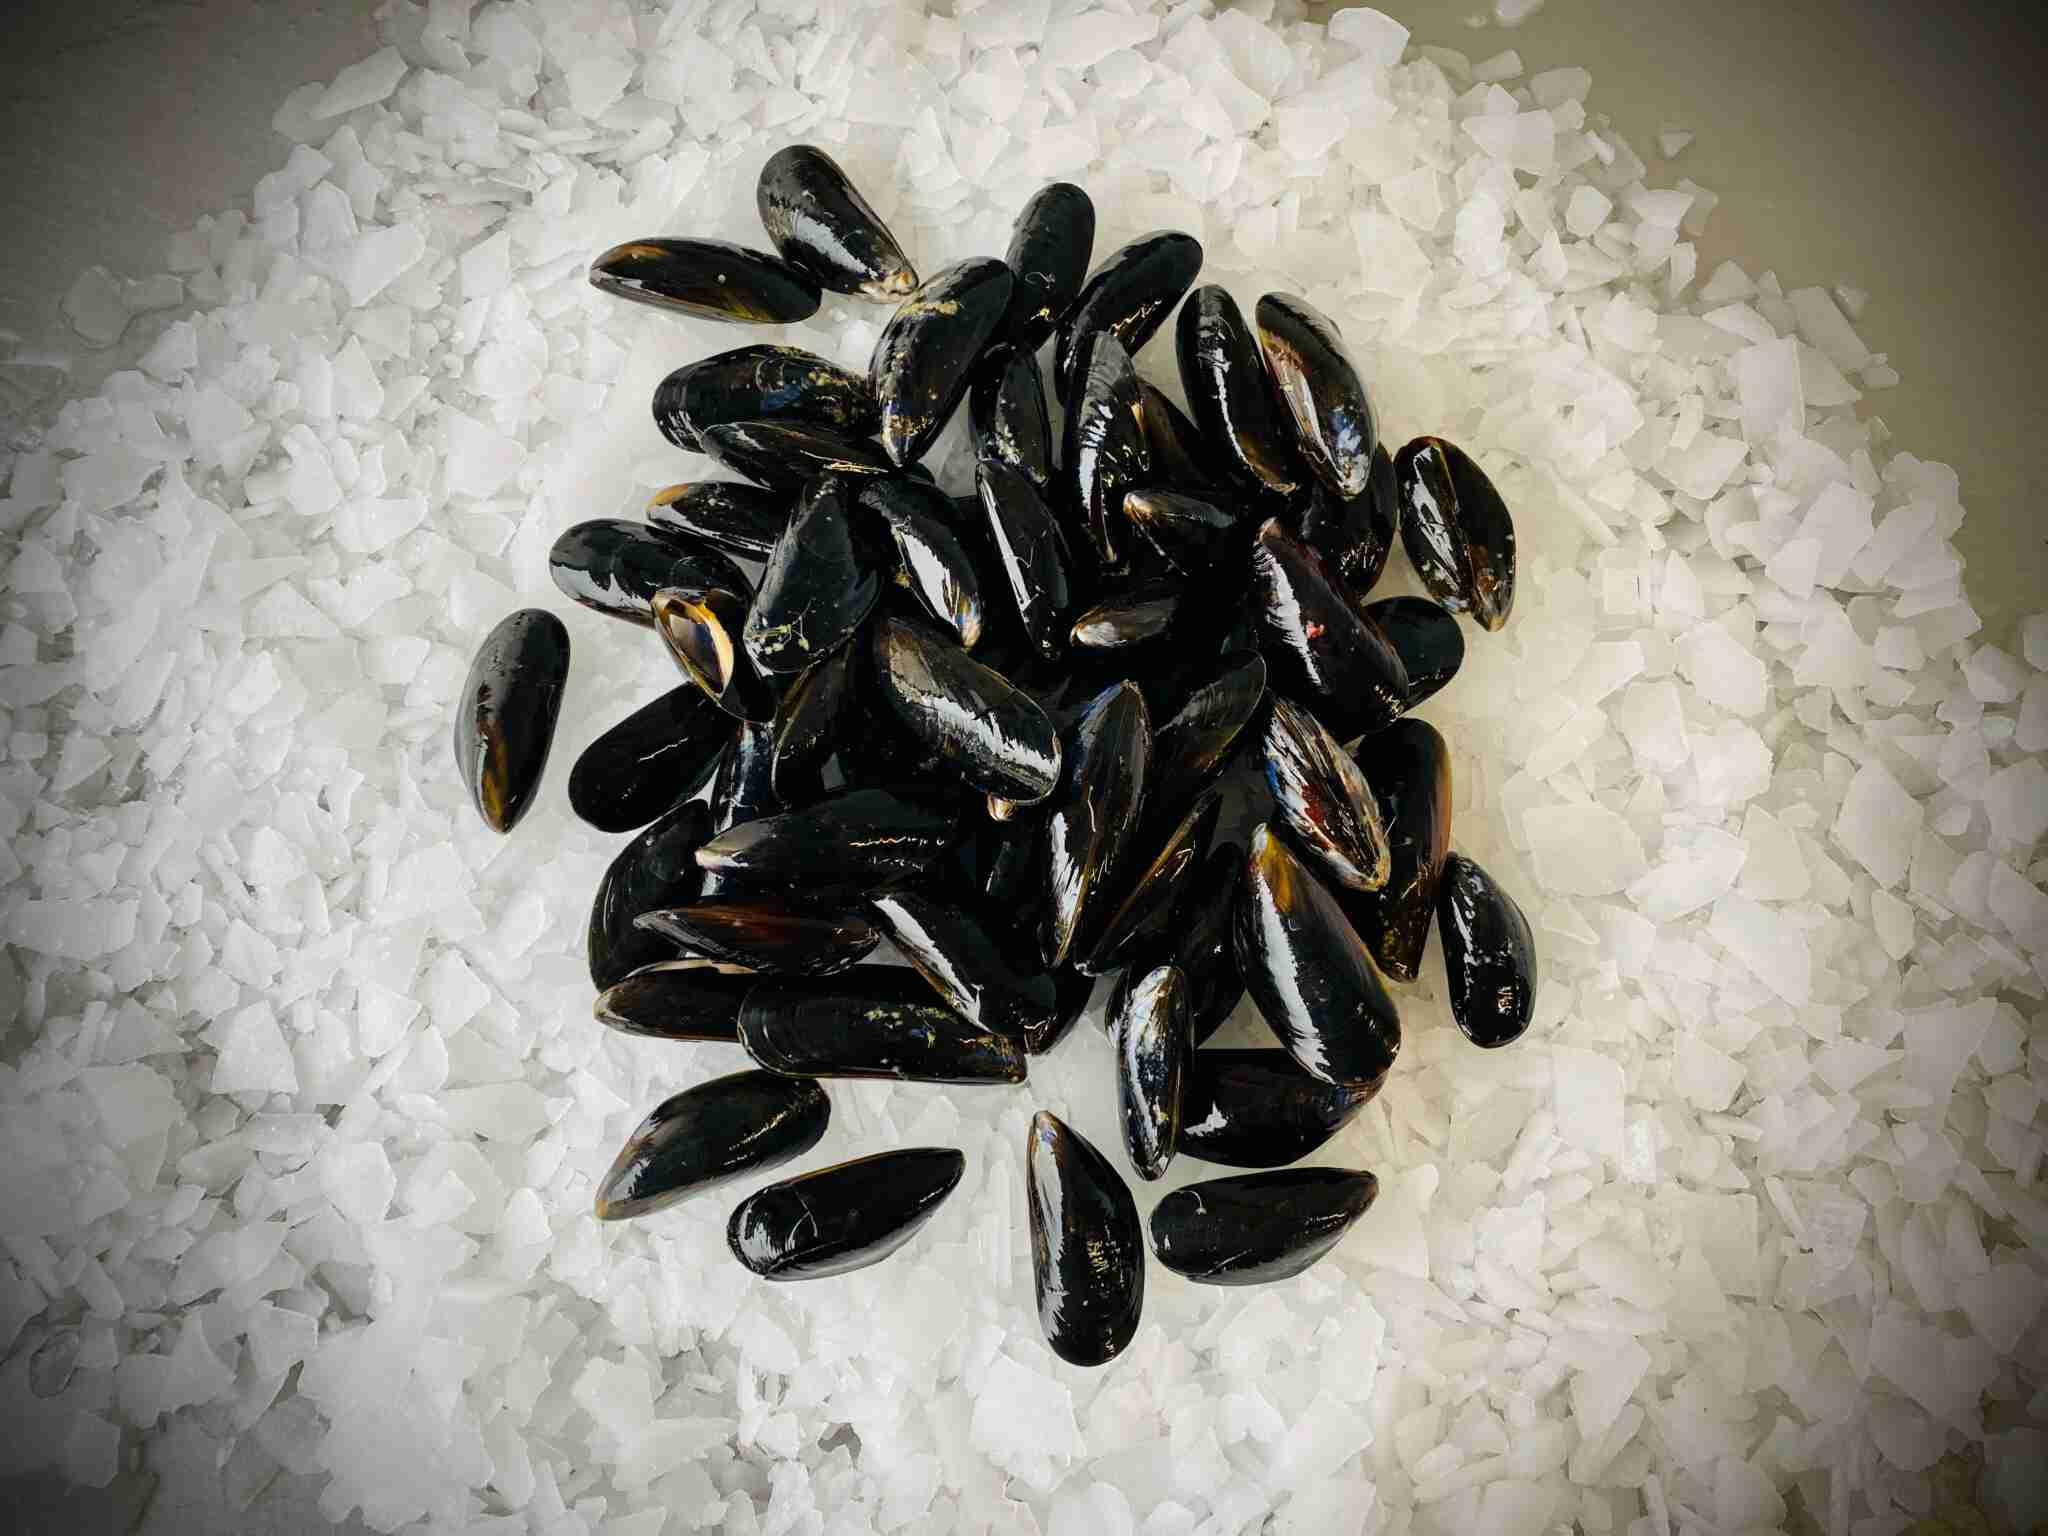 Live St.austel Bay Cornish Mussels